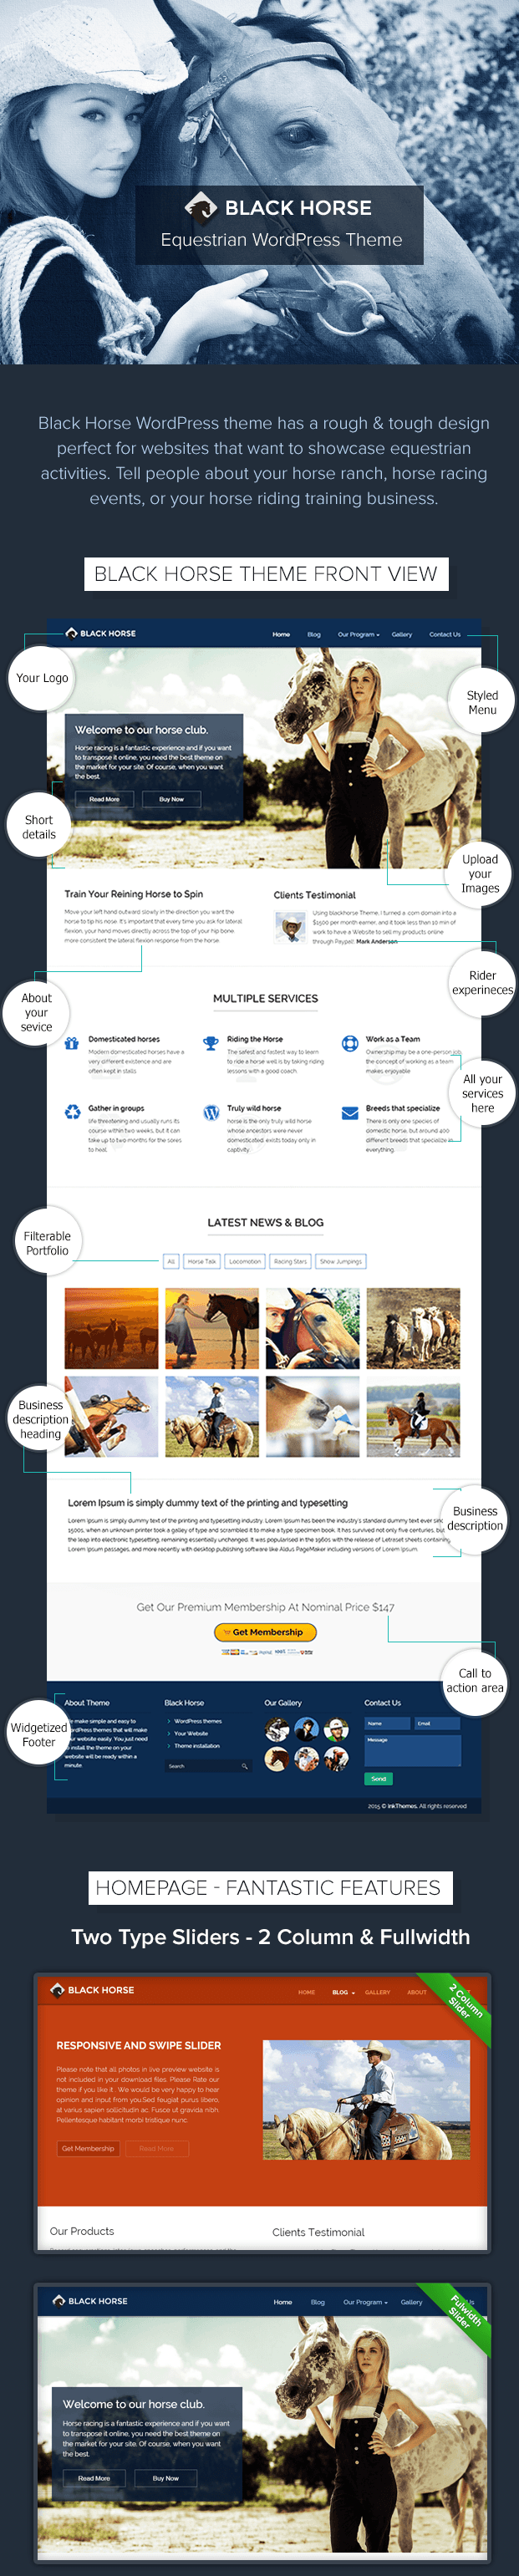 blackhorse wordpress theme